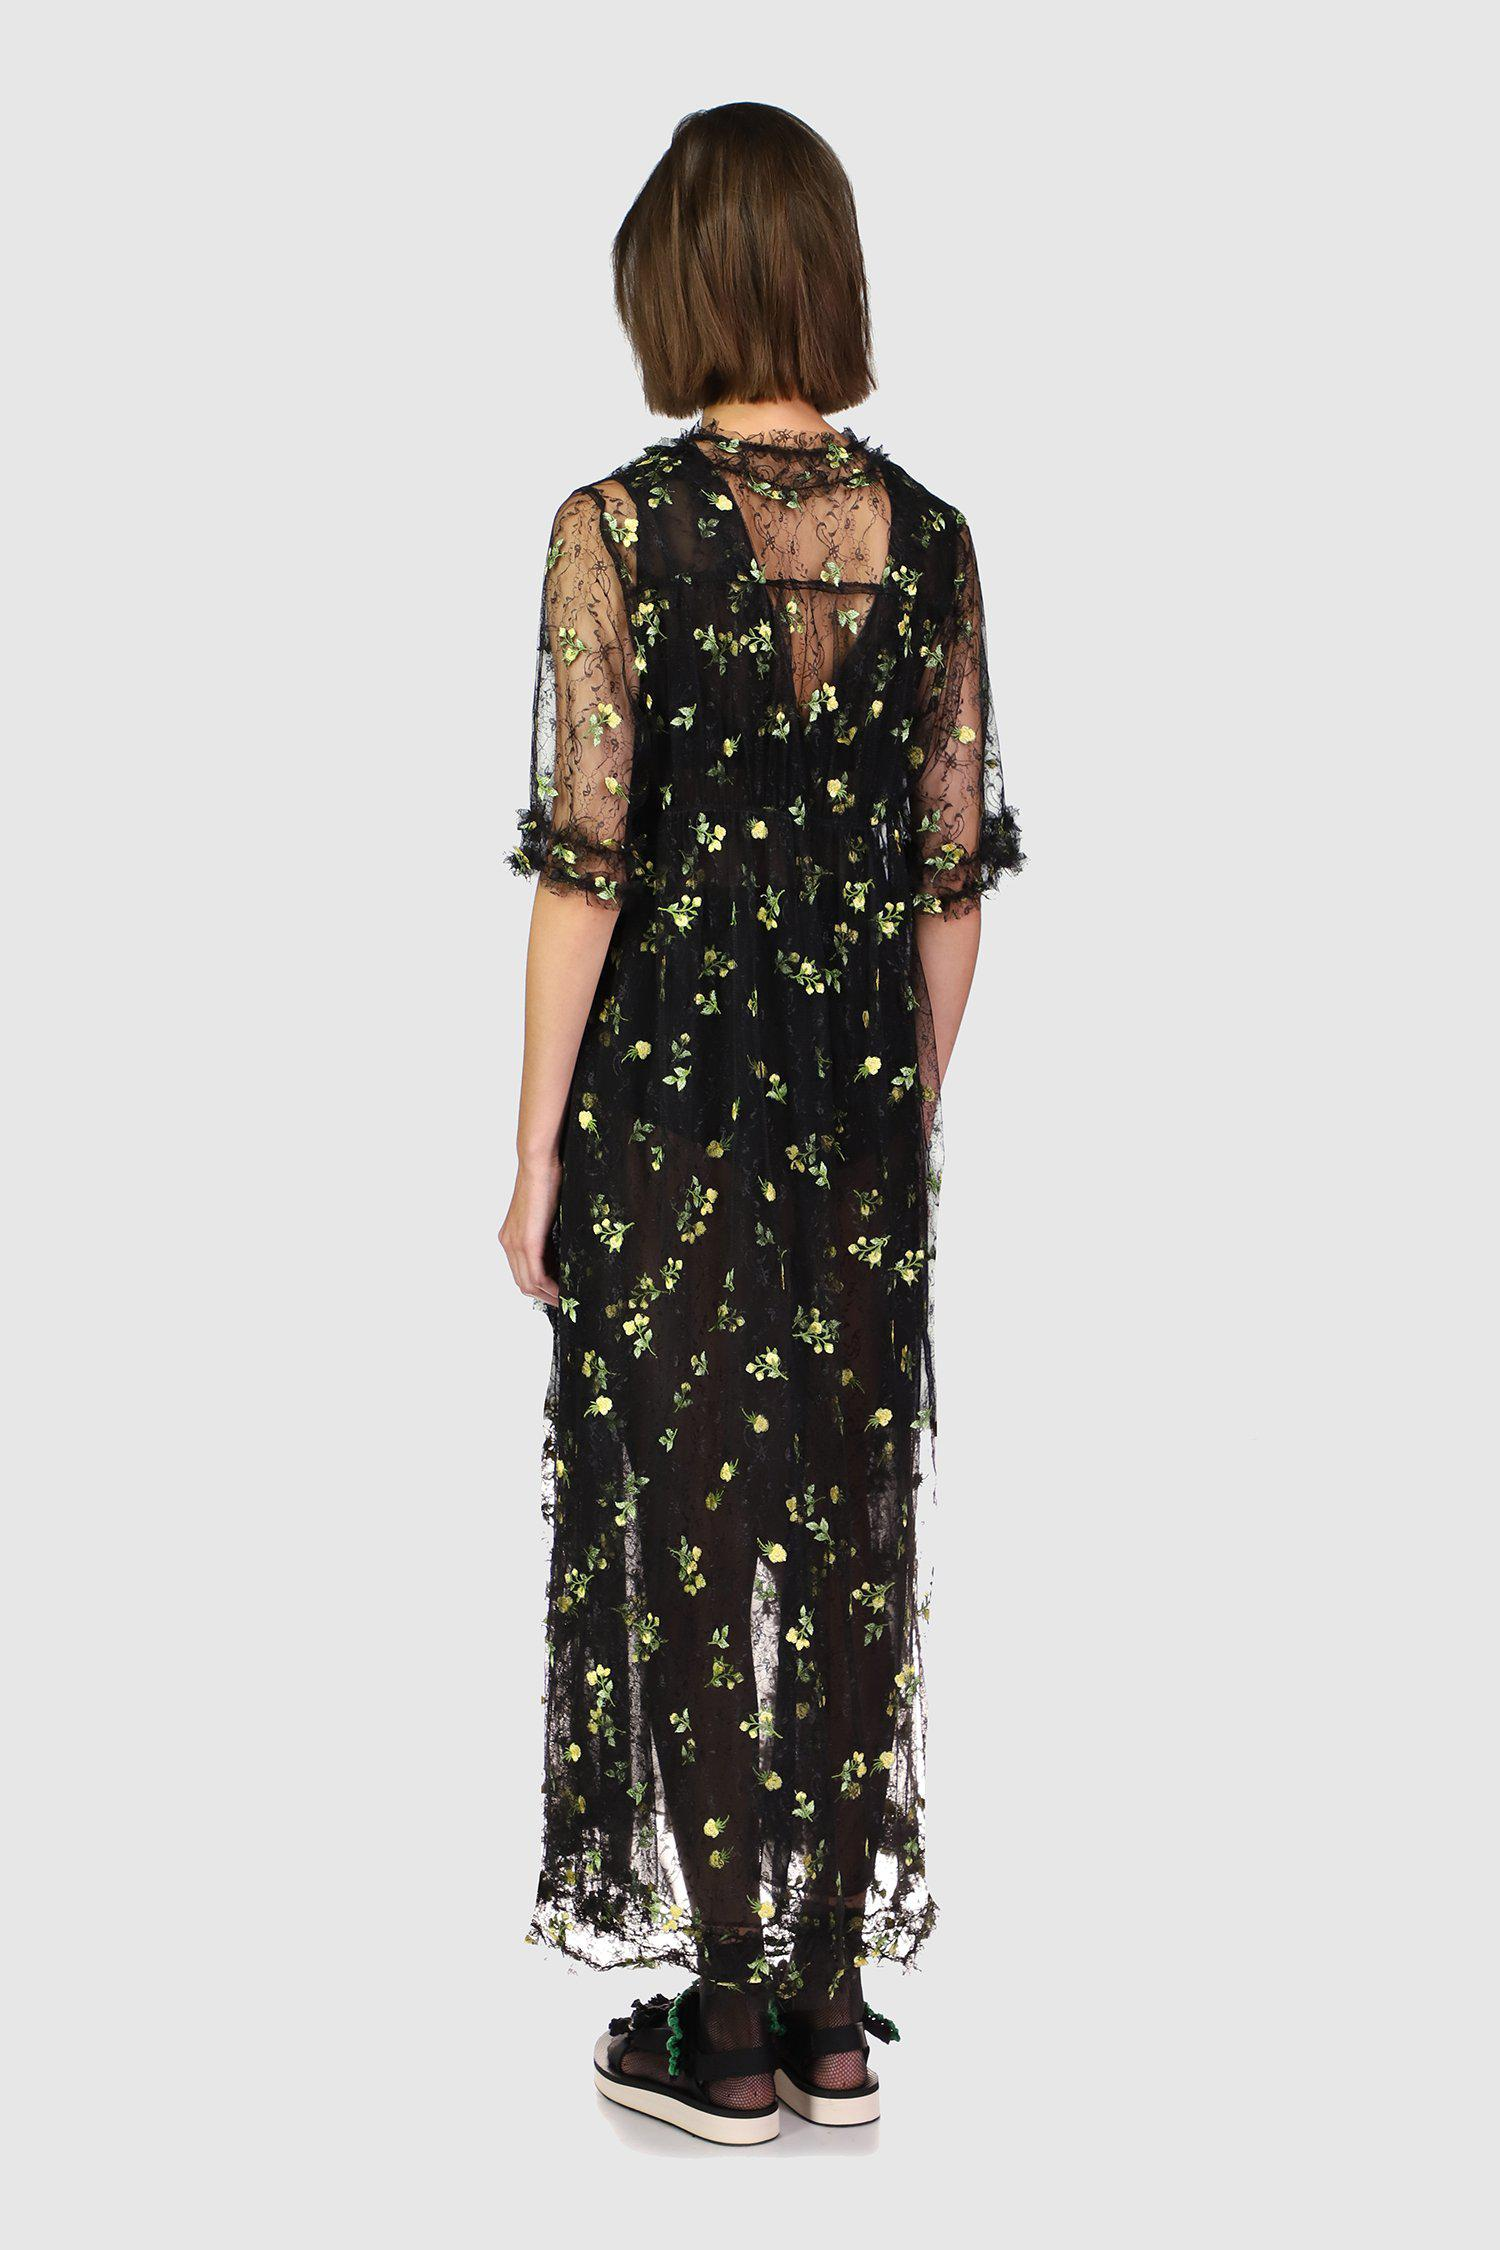 Scattered Blooms Lace Duster 2